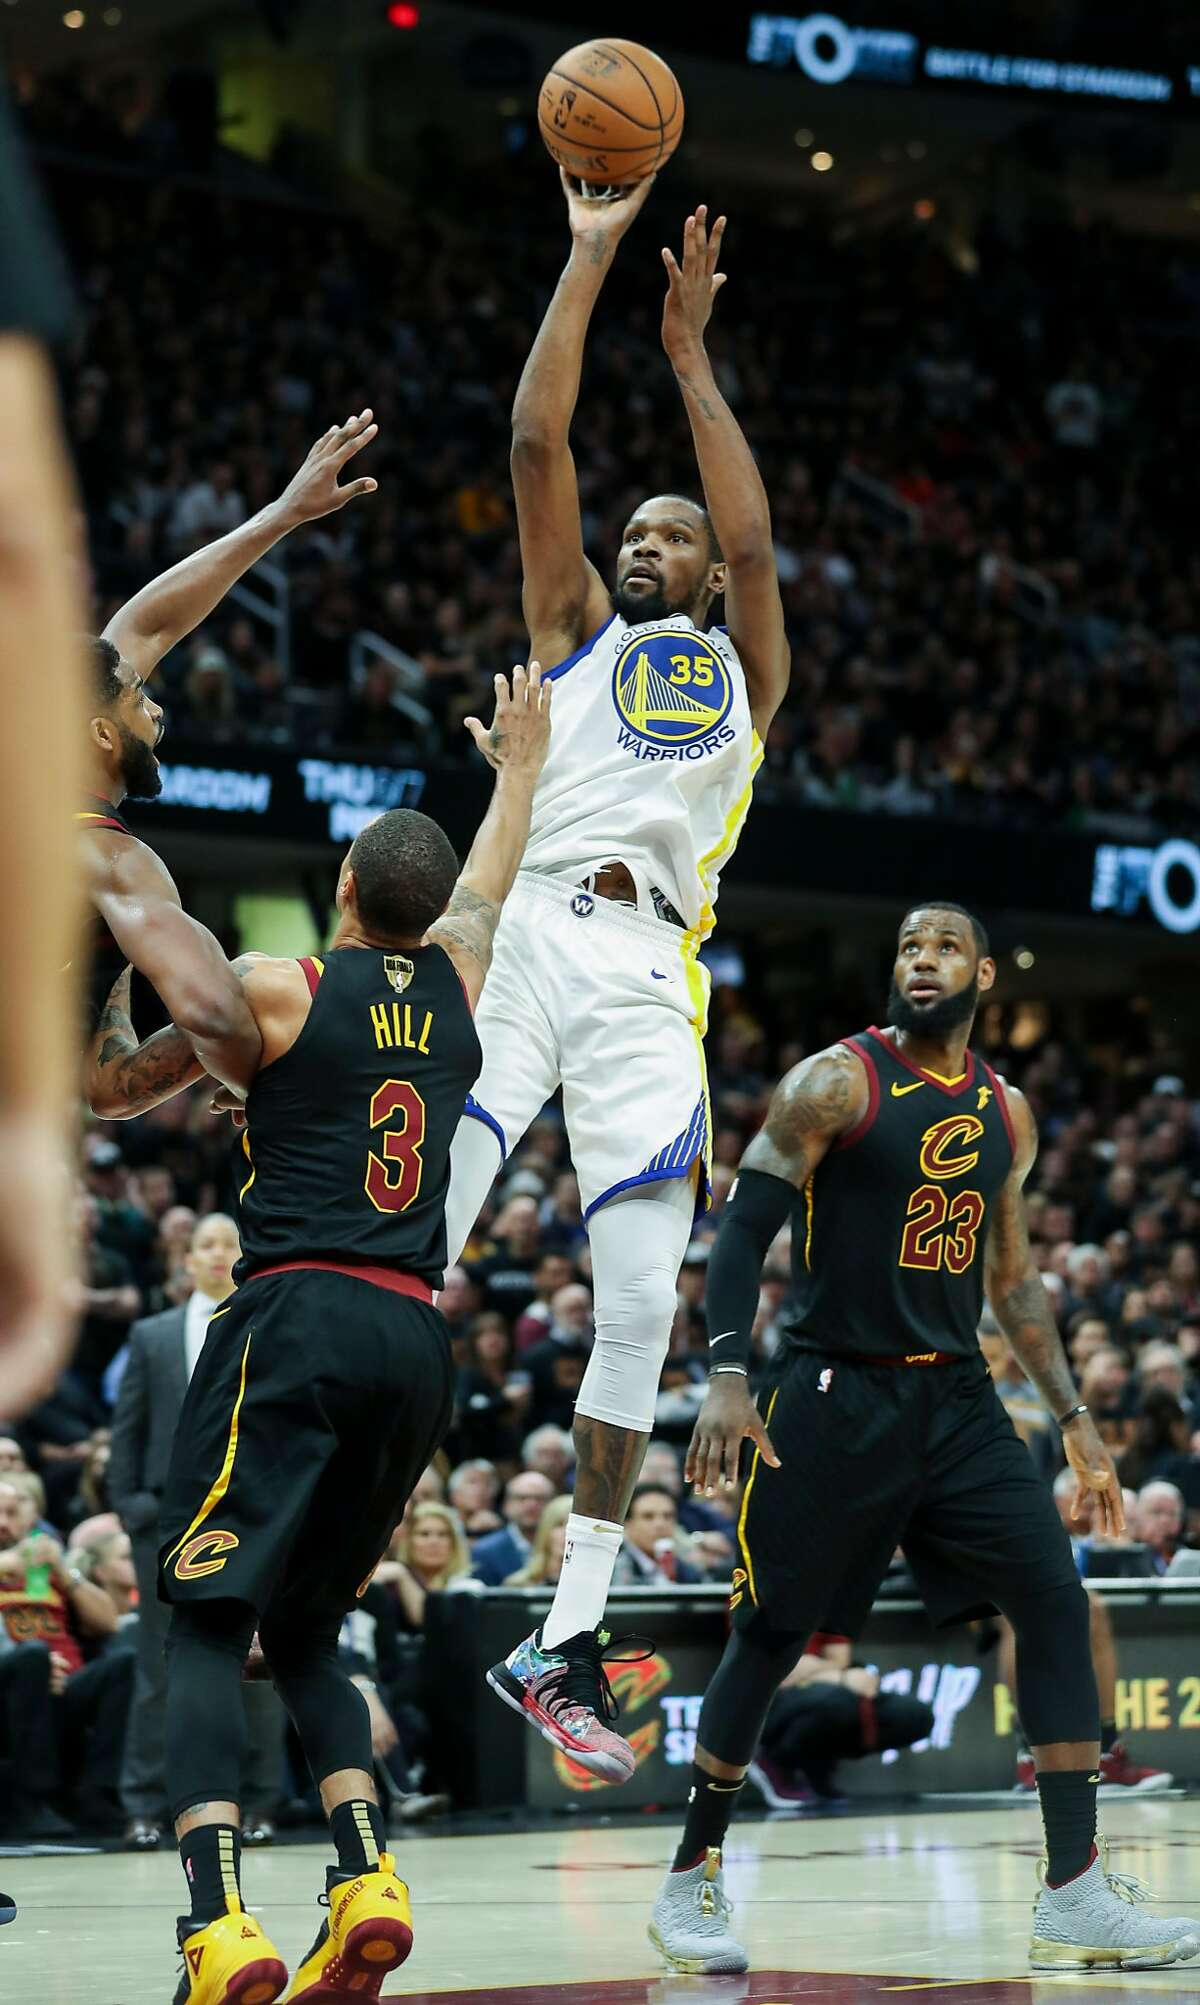 Golden State Warriors' Kevin Durant shoots over Cleveland Cavaliers' Tristan Thompson and George Hill in the third quarter during game 3 of The NBA Finals between the Golden State Warriors and the Cleveland Cavaliers at Oracle Arena on Wednesday, June 6, 2018 in Cleveland, Ohio.